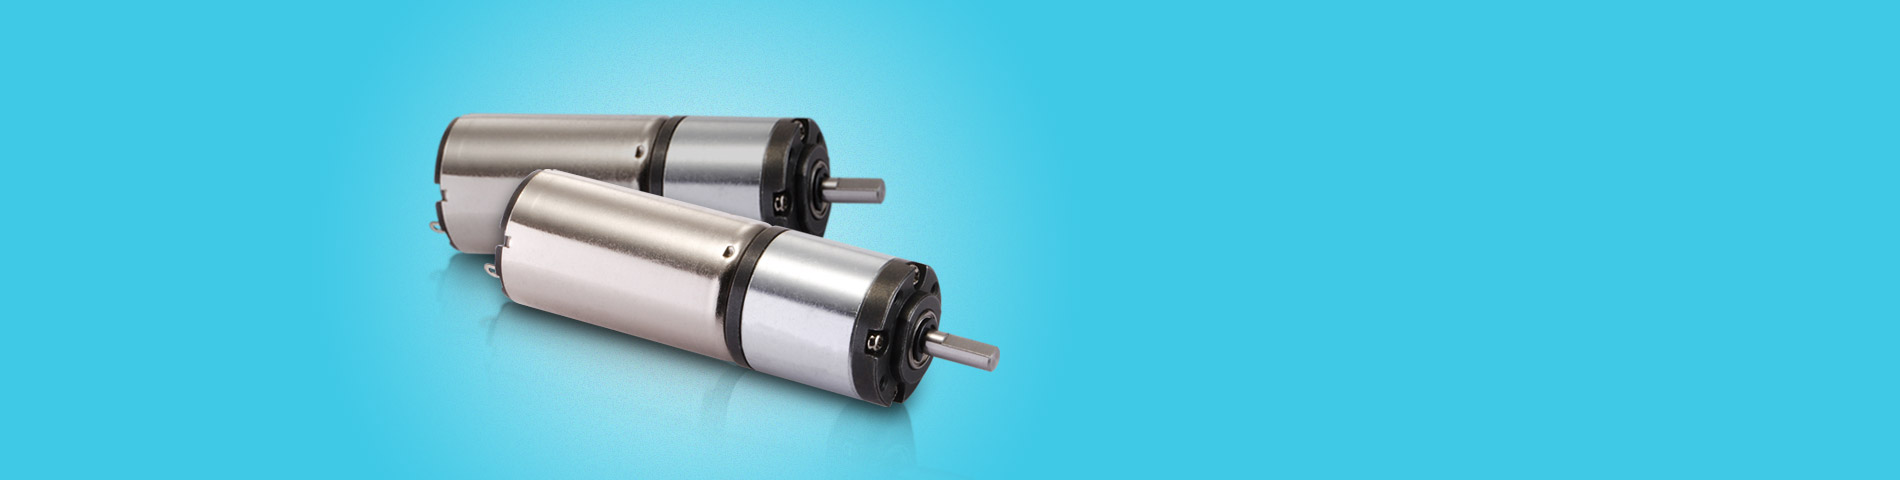 We Make DC Gearmotors Over 20 Years